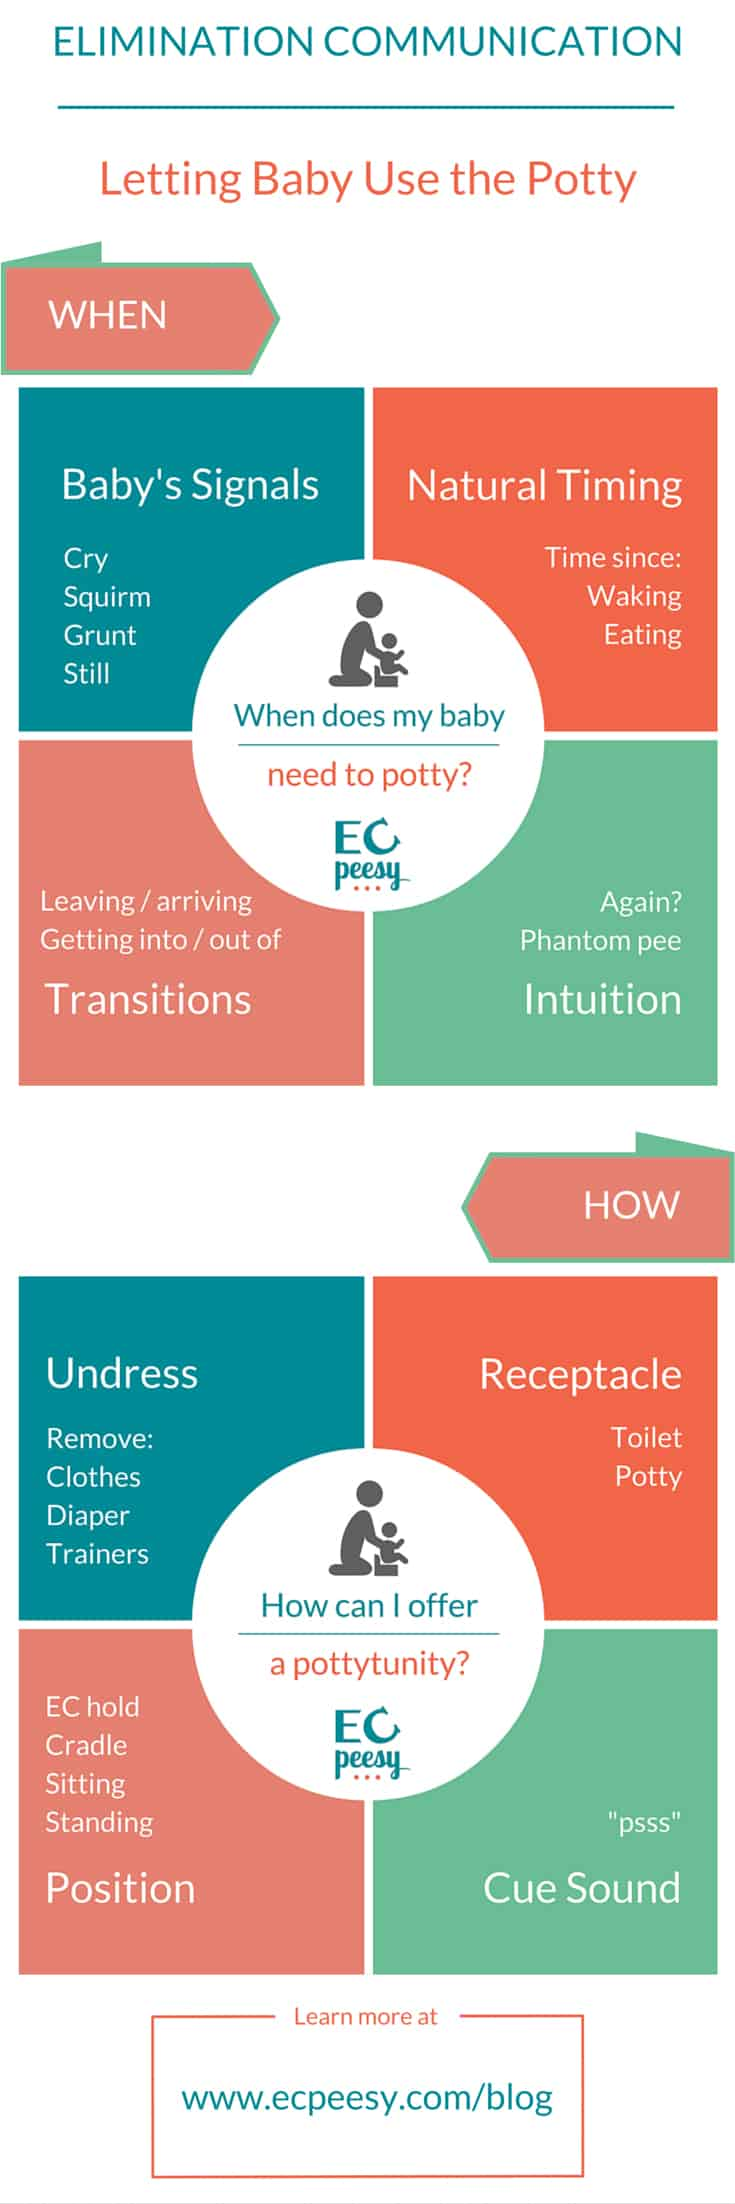 How to Start EC: When and How to Let Baby Use the Potty